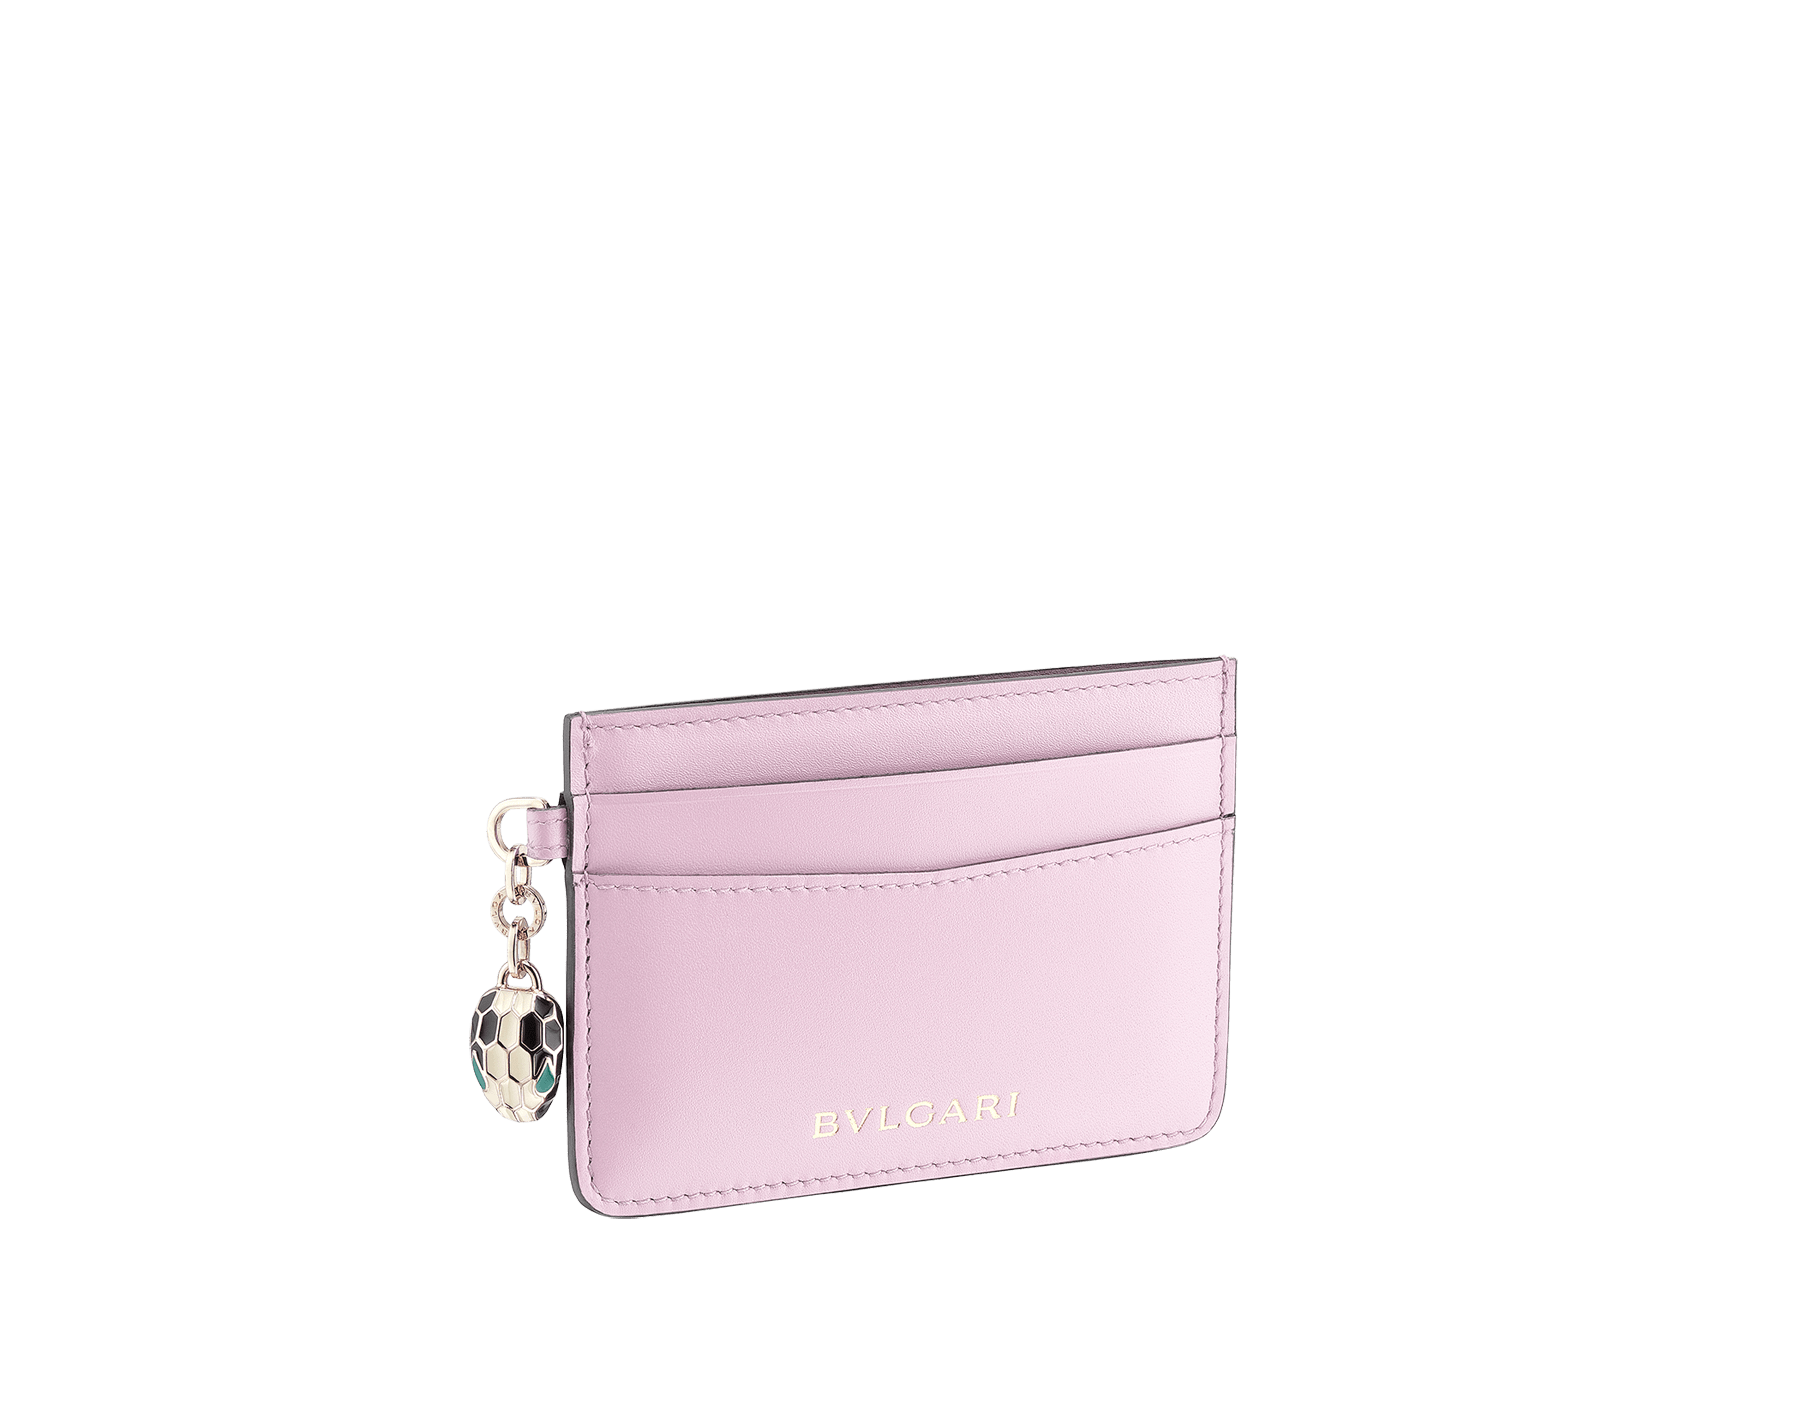 Serpenti Forever credit card holder in sea star coral and pink spinel calf leather. Iconic snakehead charm in black and white enamel, with green malachite enamel eyes. SEA-CC-HOLDER-CLb image 1